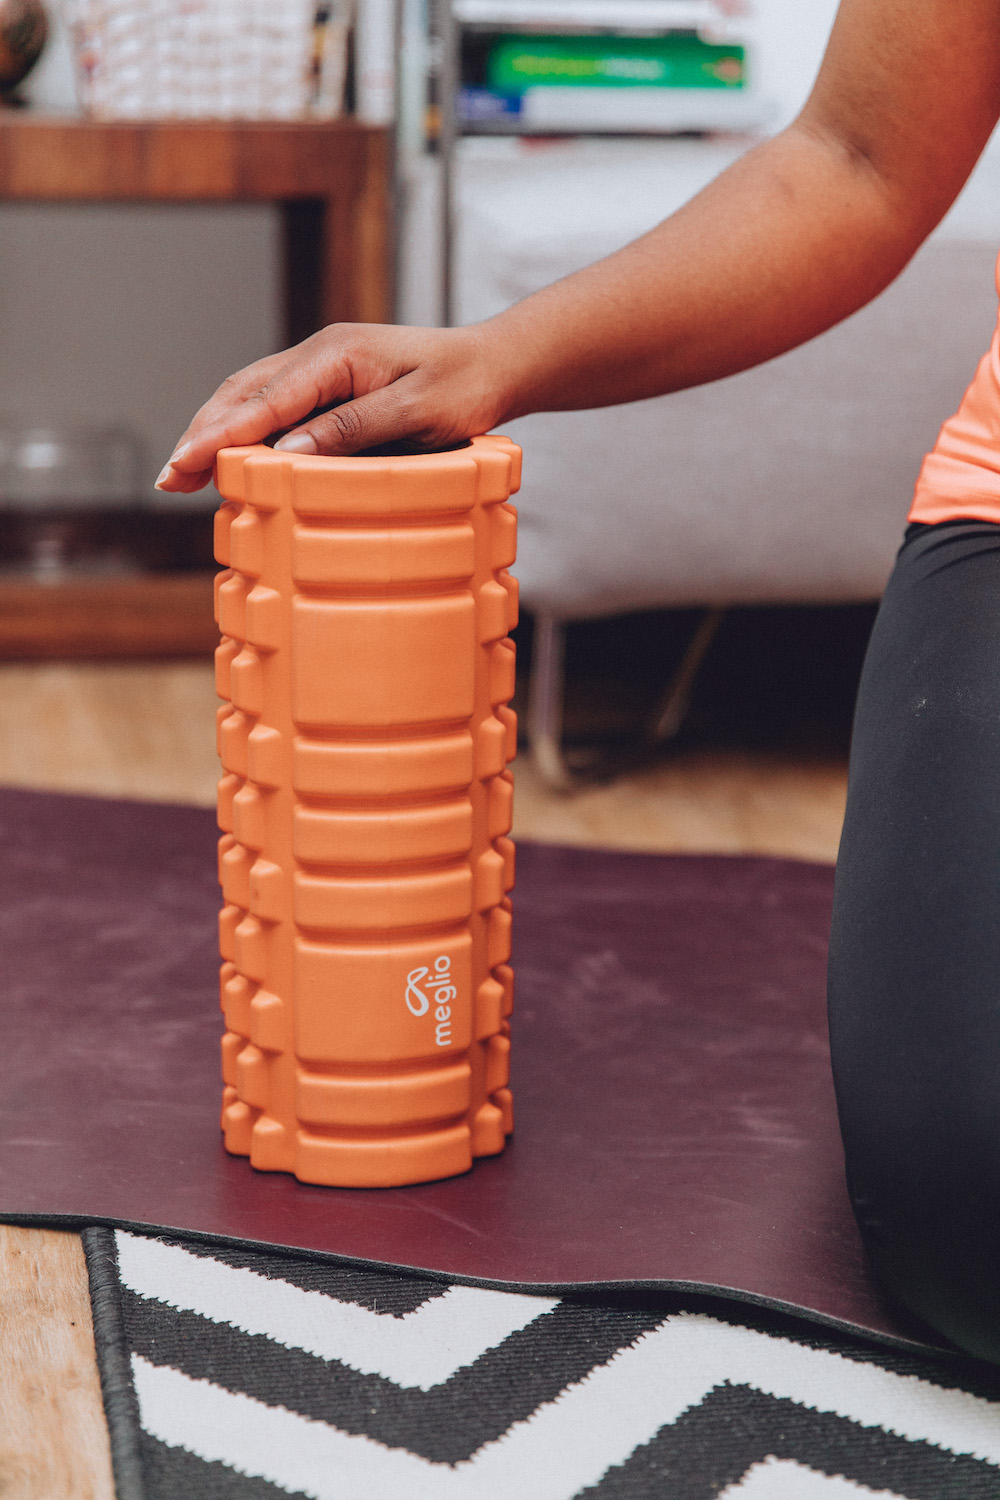 Best All Rounder Foam Roller - which foam rollers are the best?